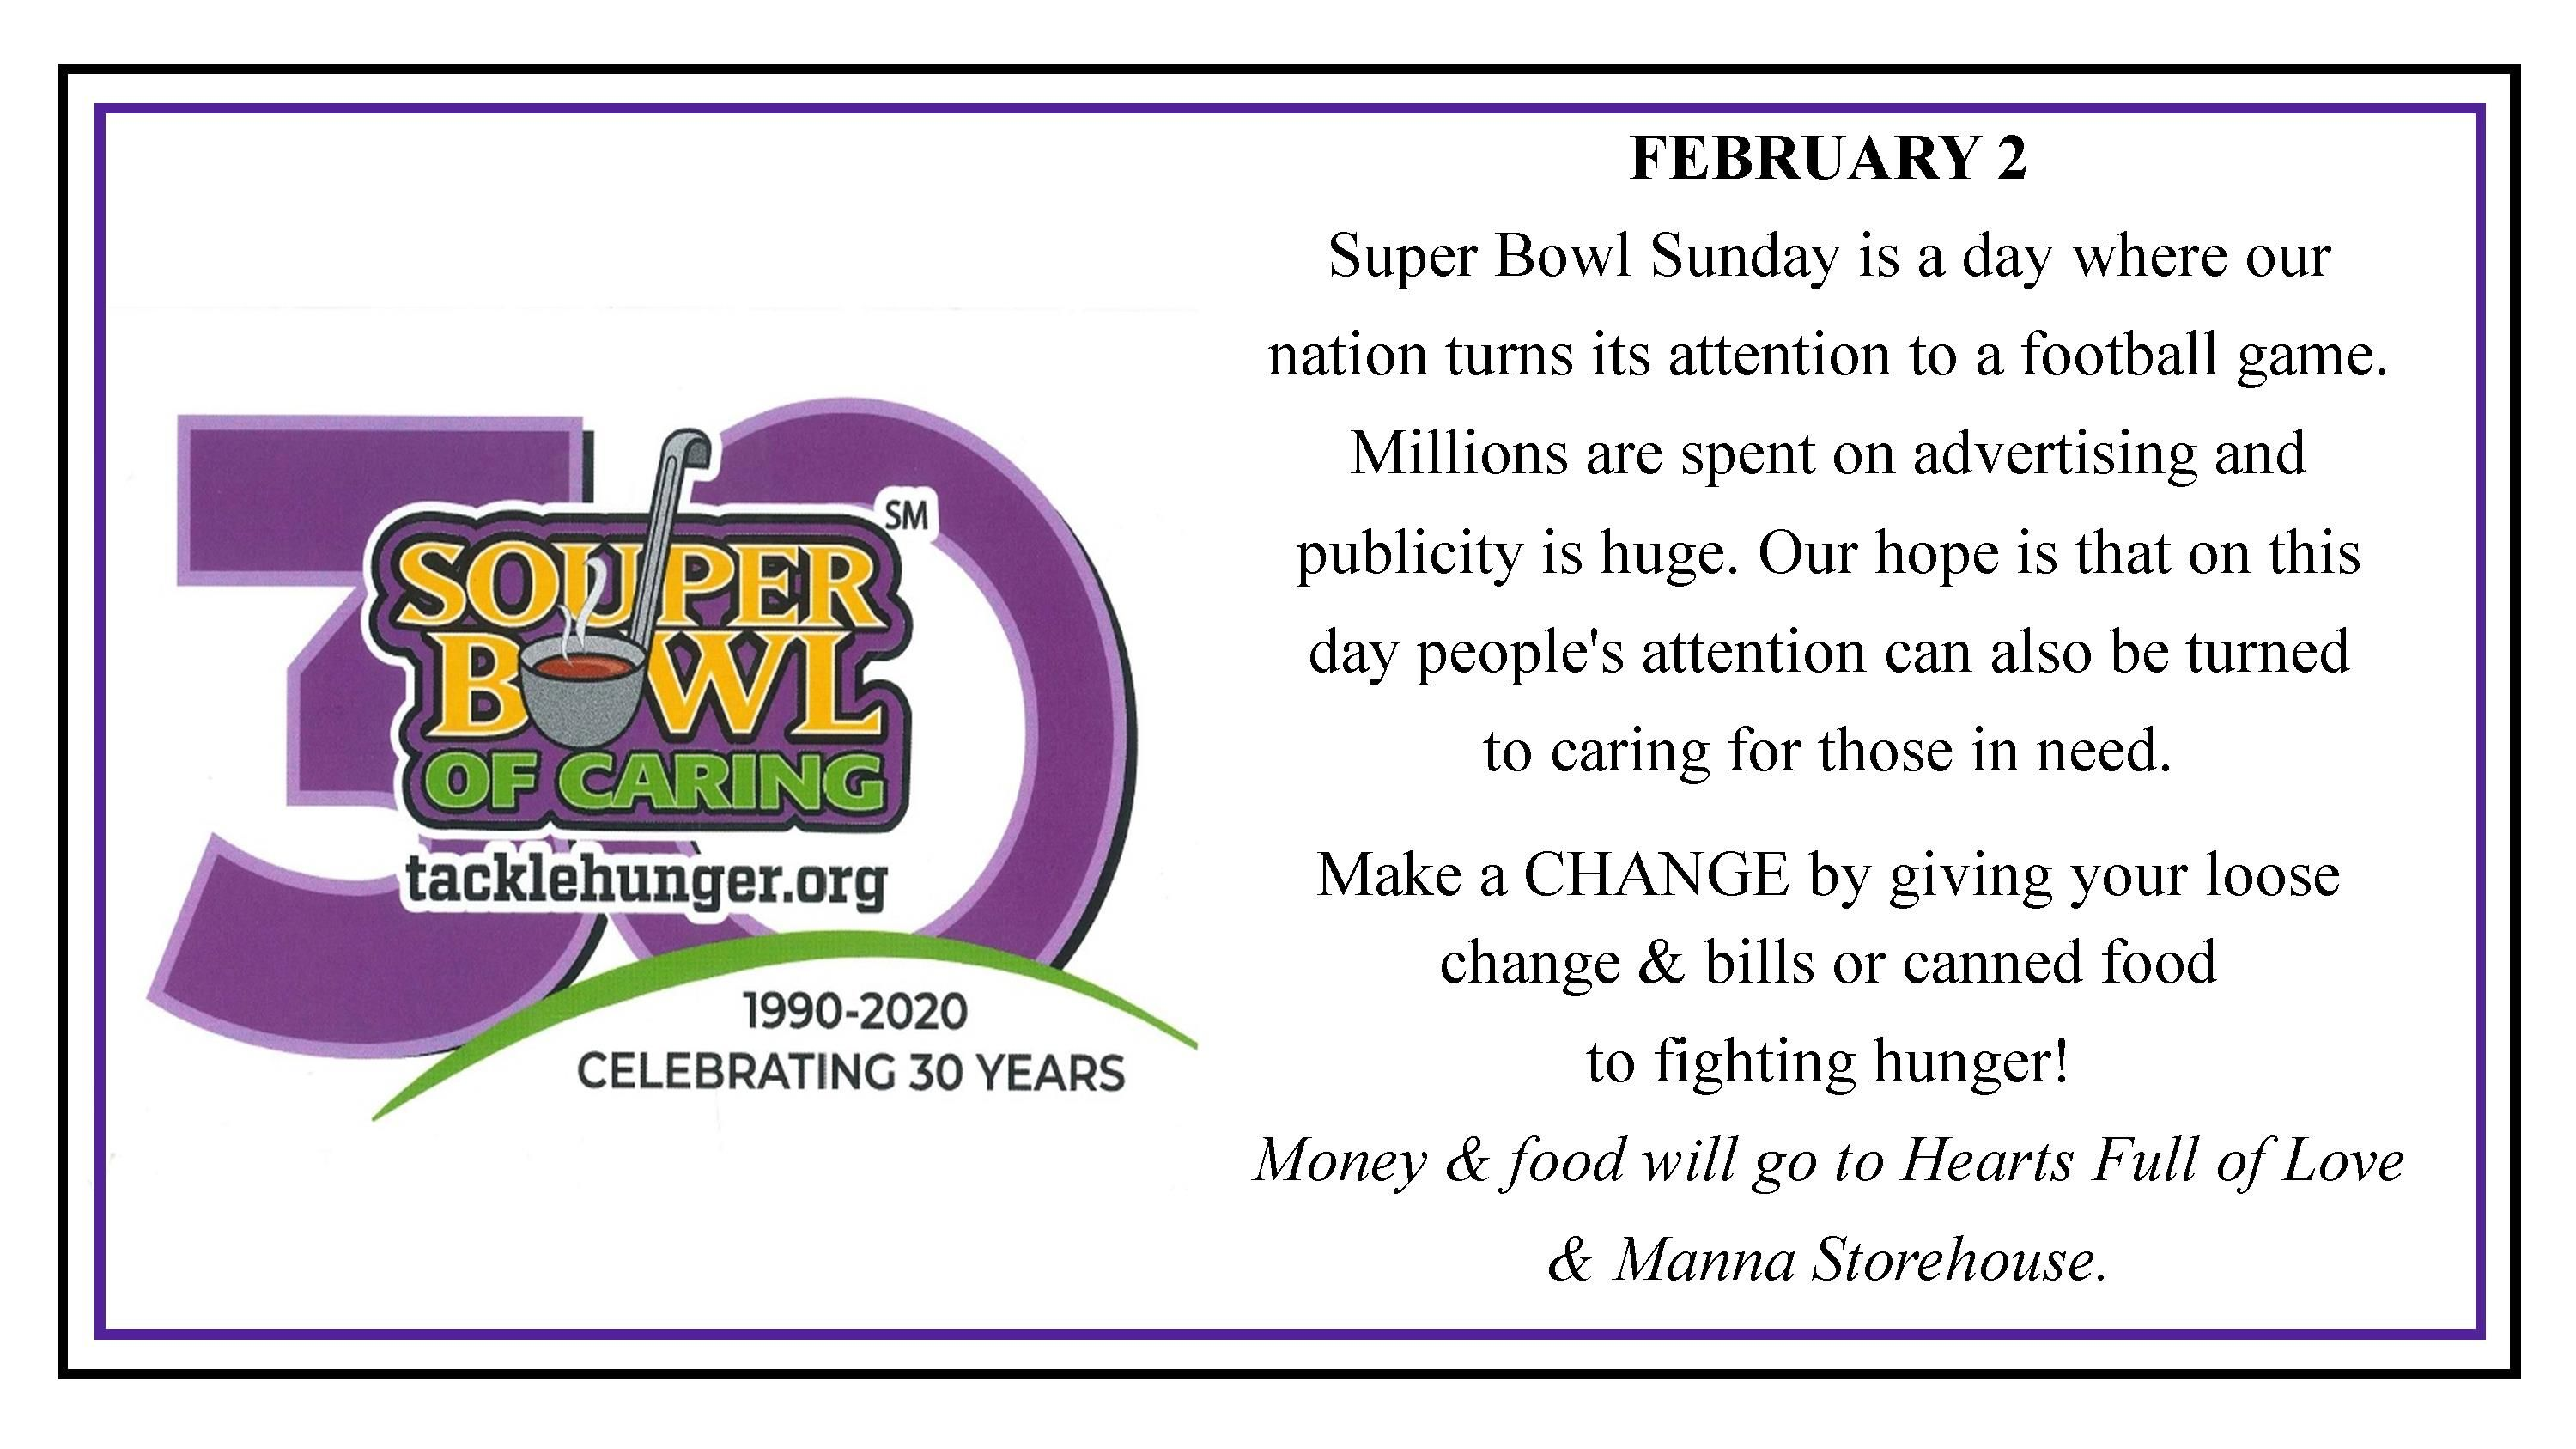 Souper Bowl of Caring NB